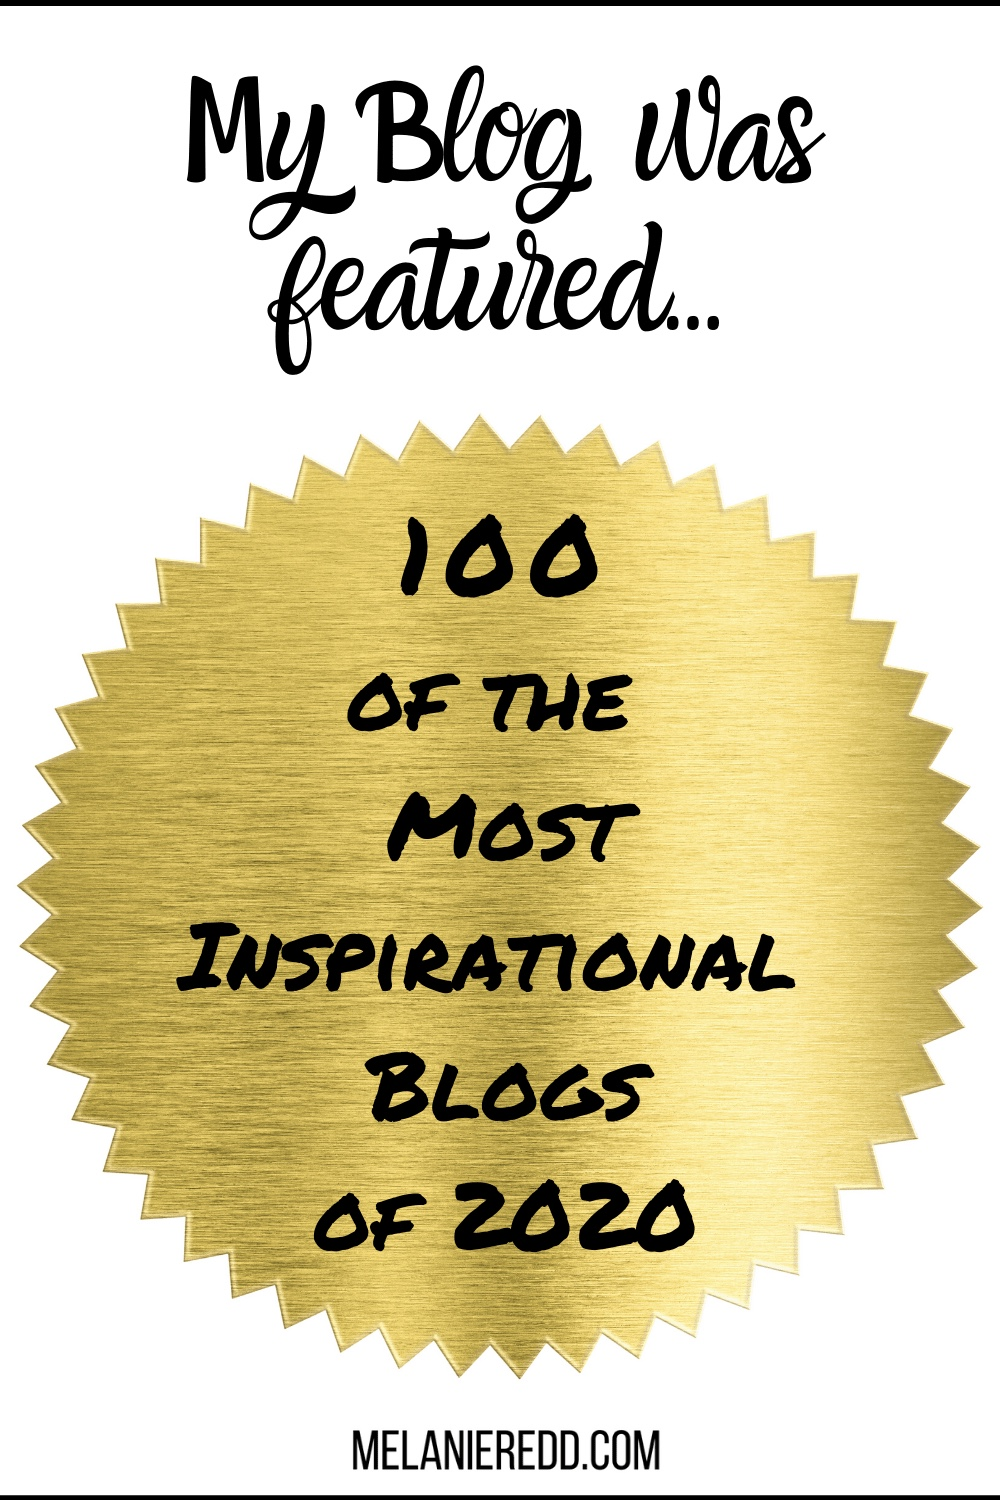 One of the 100 Most Inspirational Blogs!